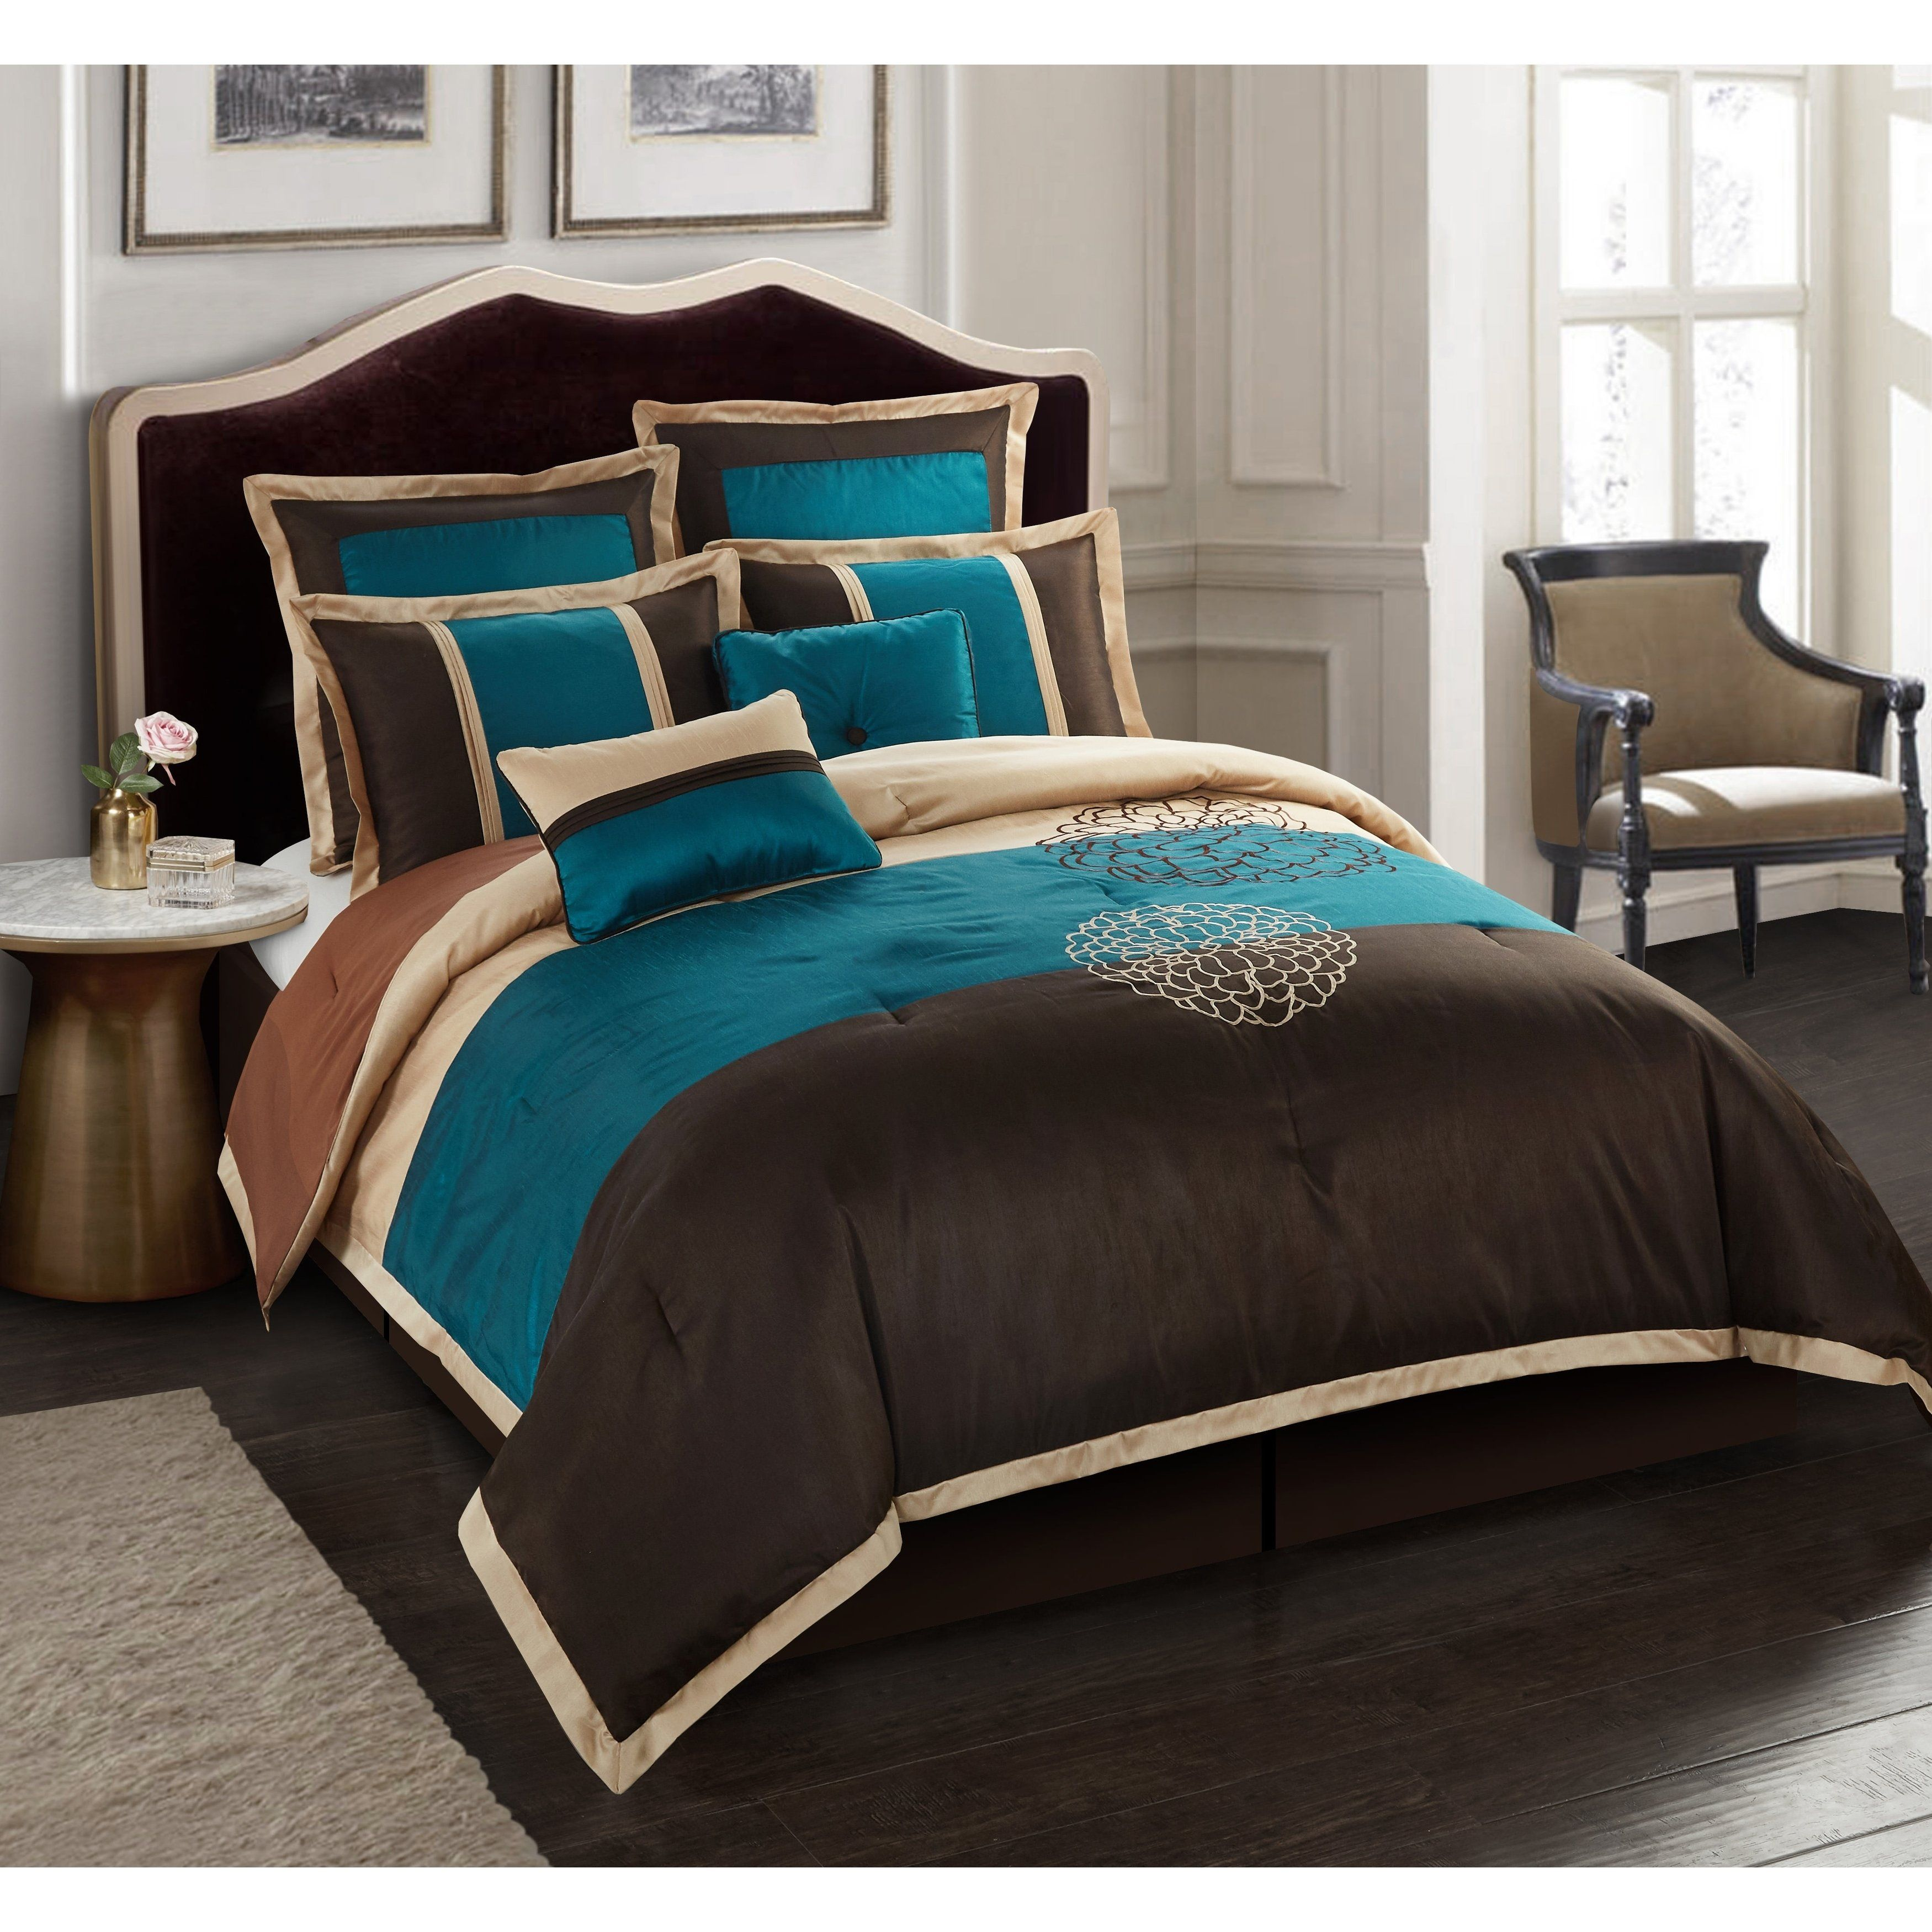 Nanshing Phoebe Brown Embroidered 8 Piece Comforter Set Queen